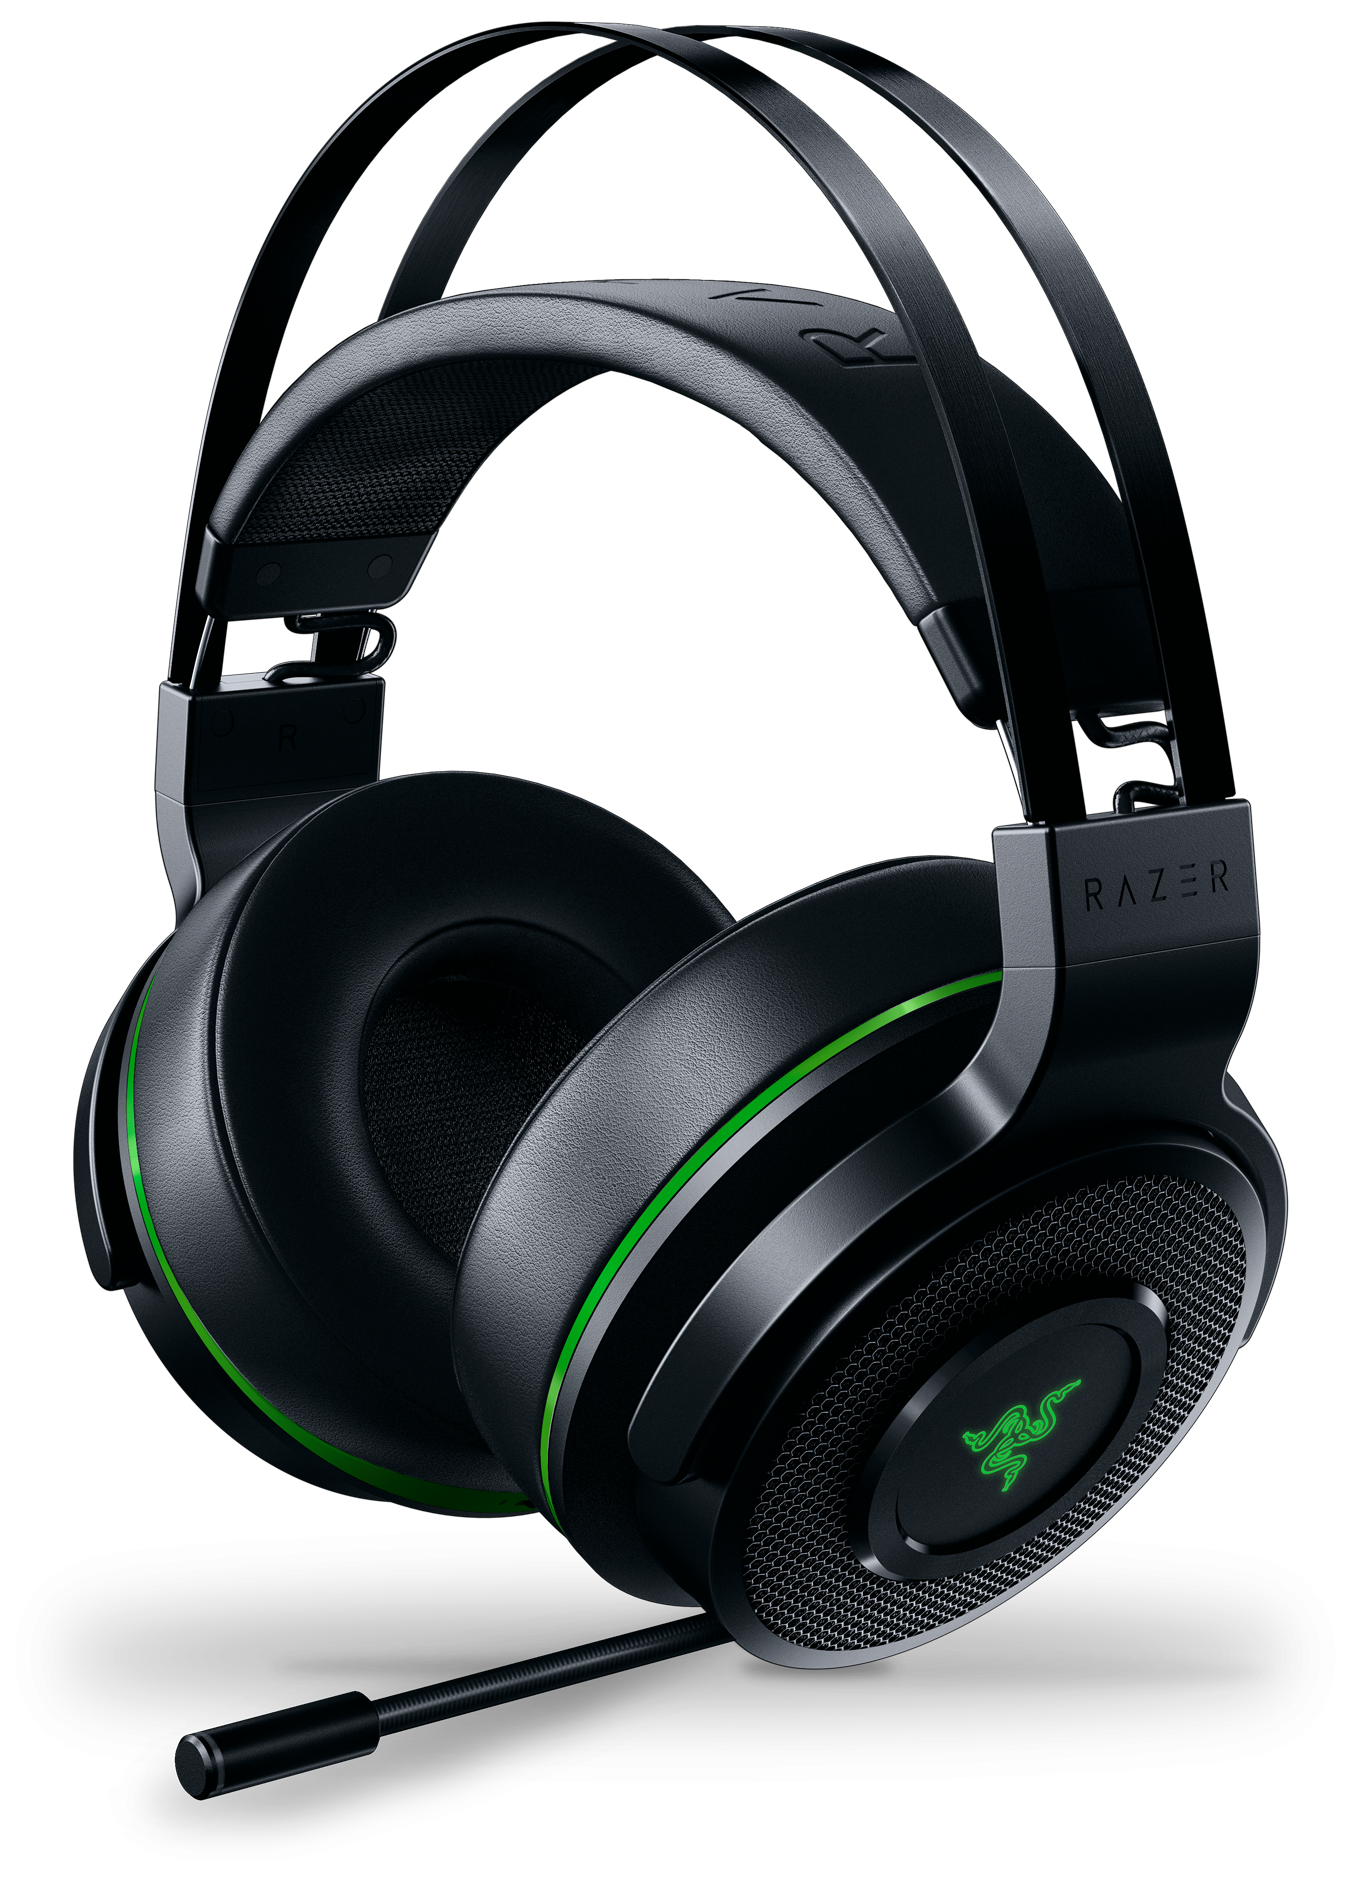 Buy Razer Thresher Wireless Gaming Headset for Xbox One - Microsoft Store